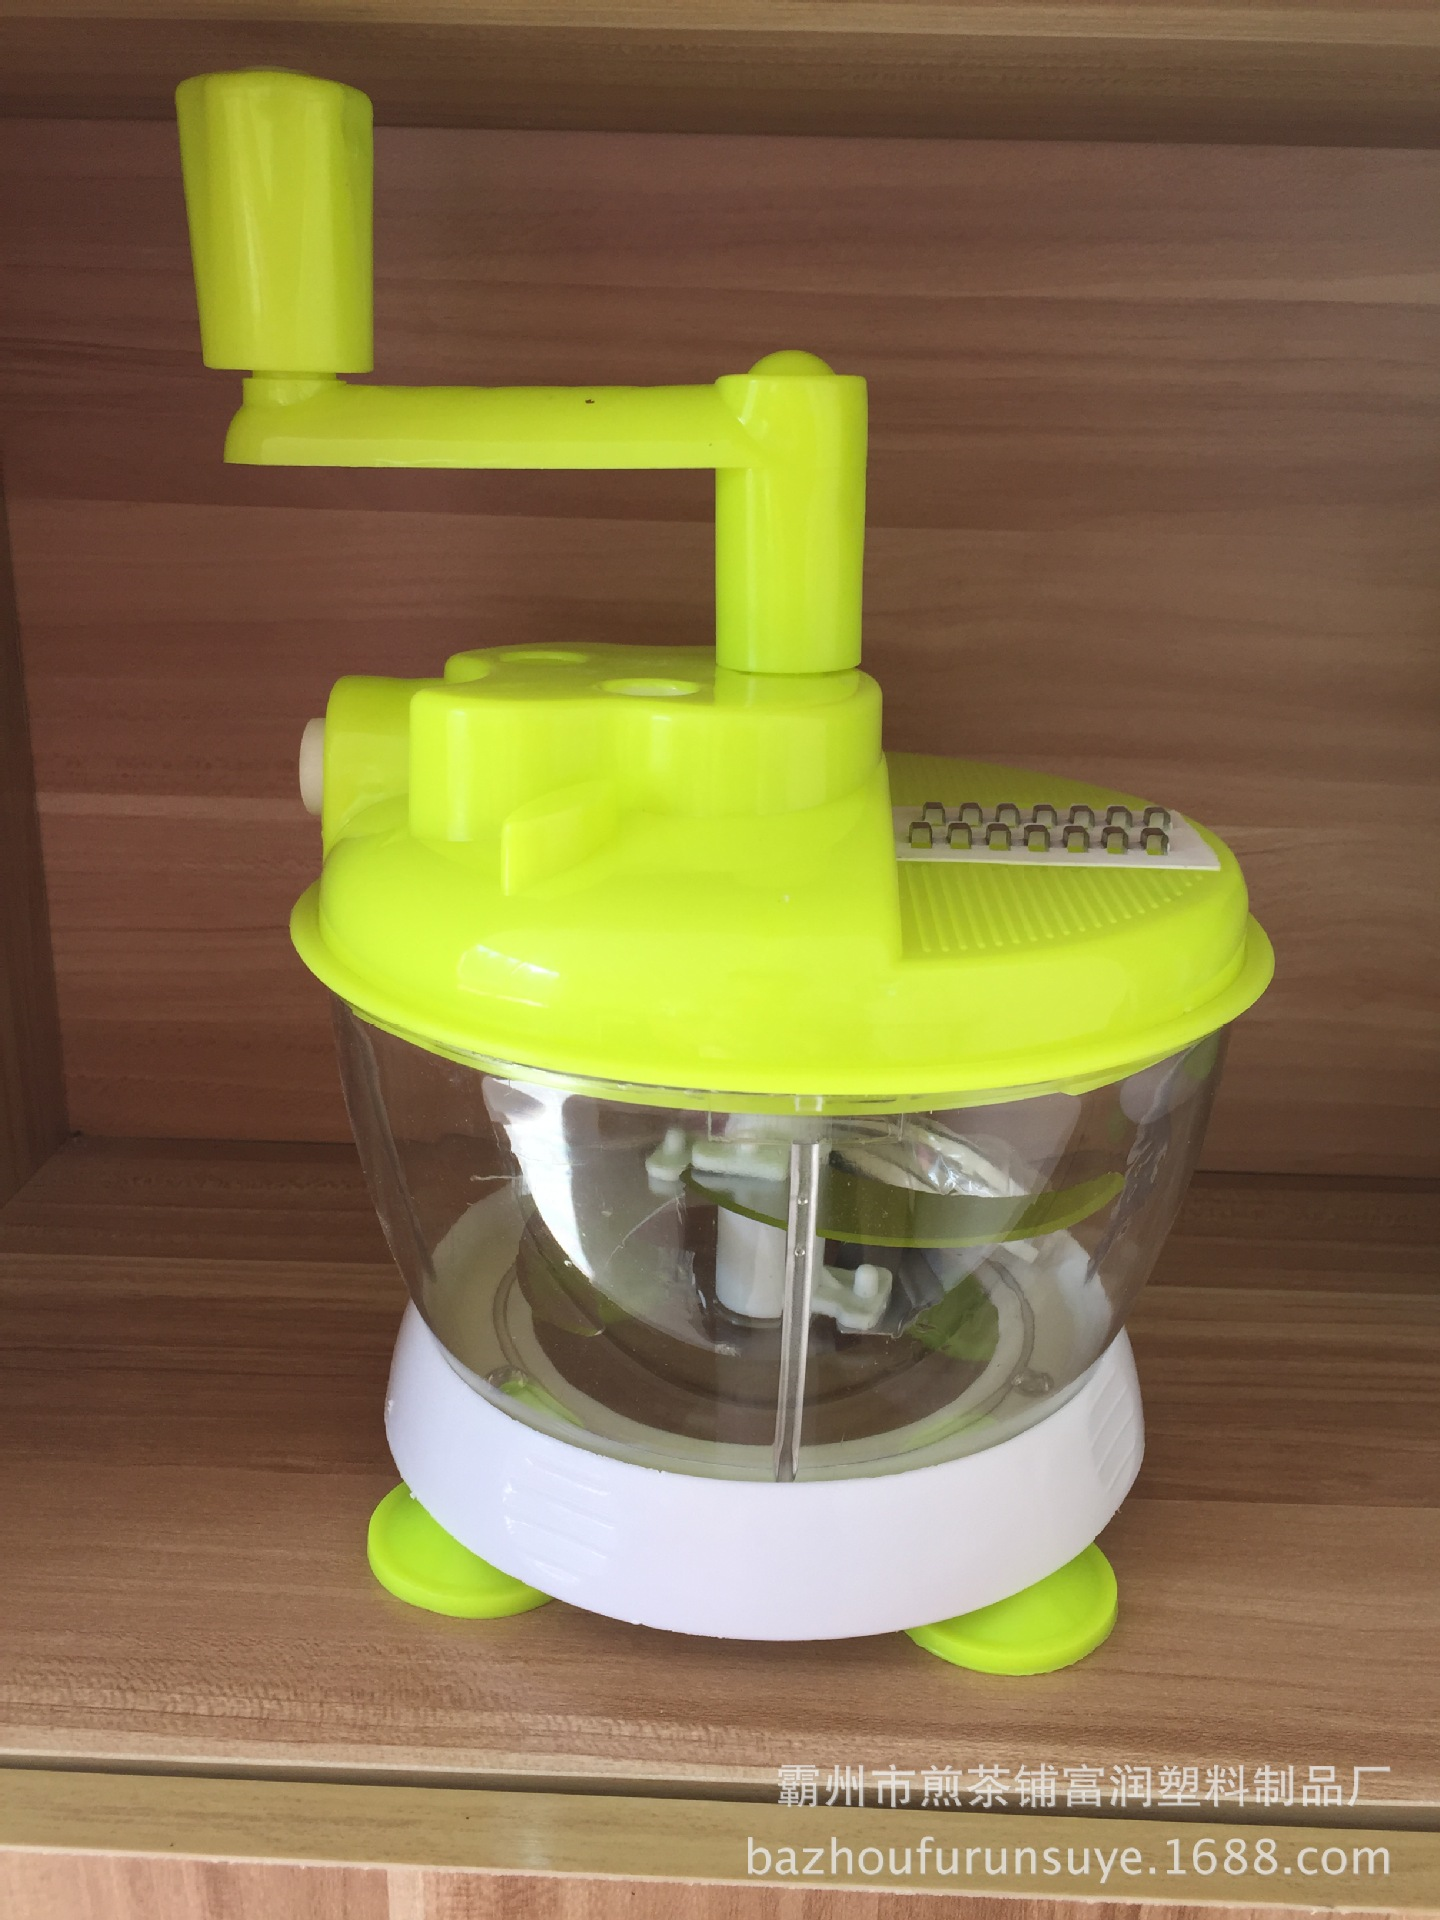 Small Apple Food Processor Multi-function Chopper Hand-cranked Cutting Machine Gift Recording